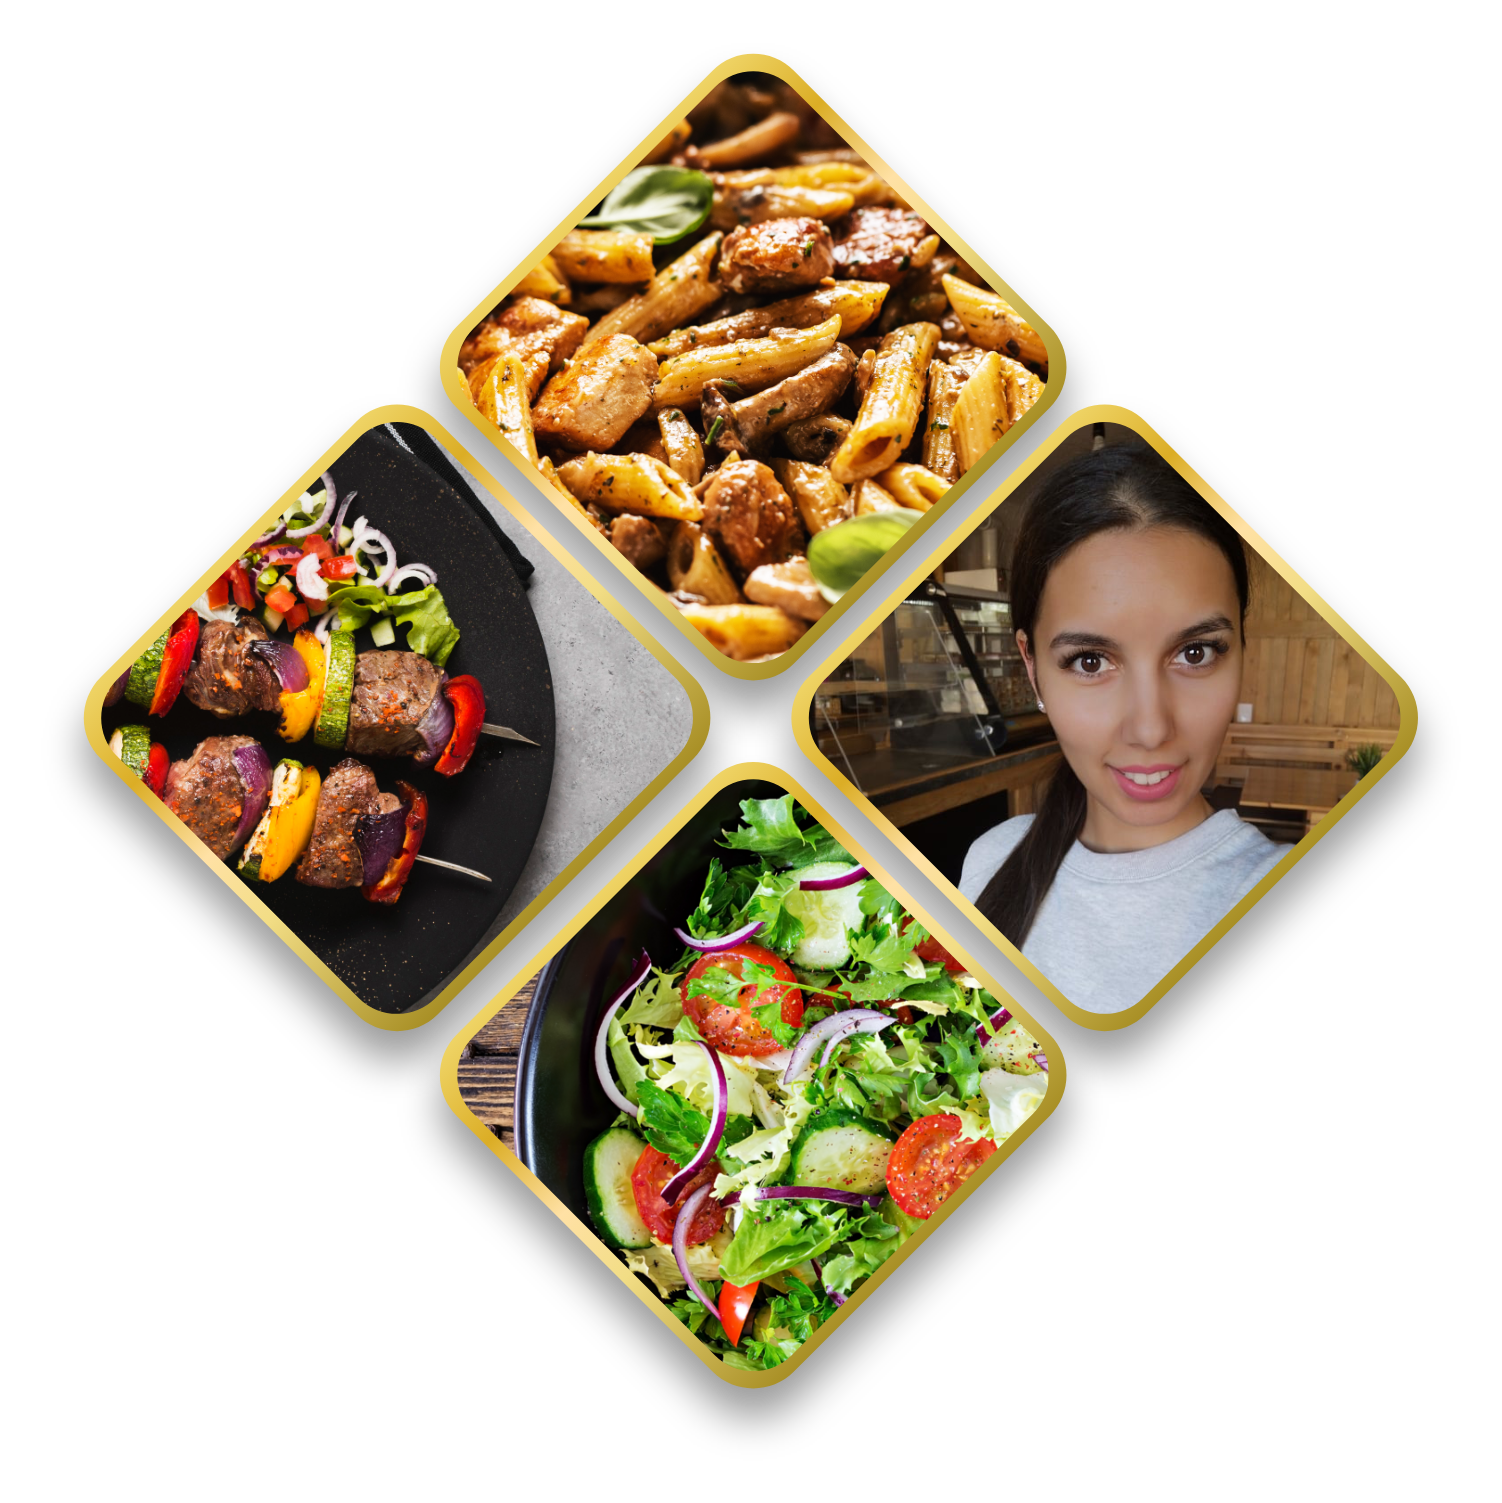 http://gladiatorfood.hu/themes/gladiatorfood/assets/images/Group-1603.png